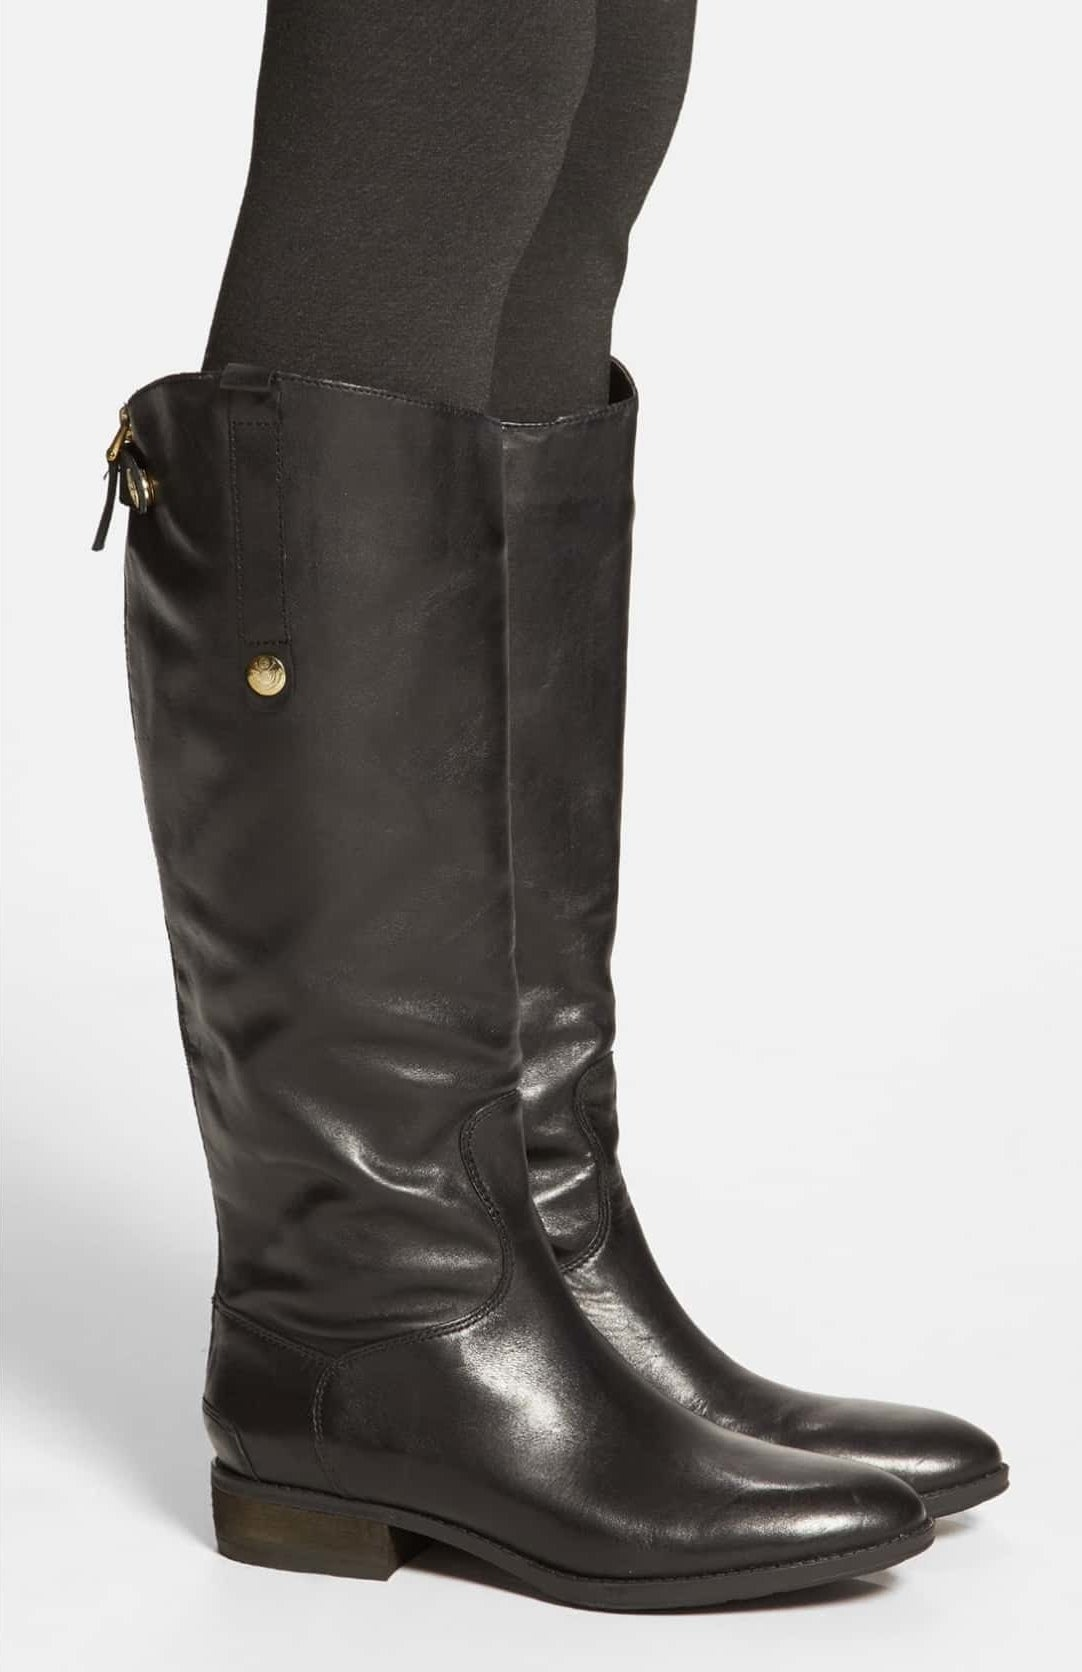 The knee-high boots with a slight heel and rounded toe in black